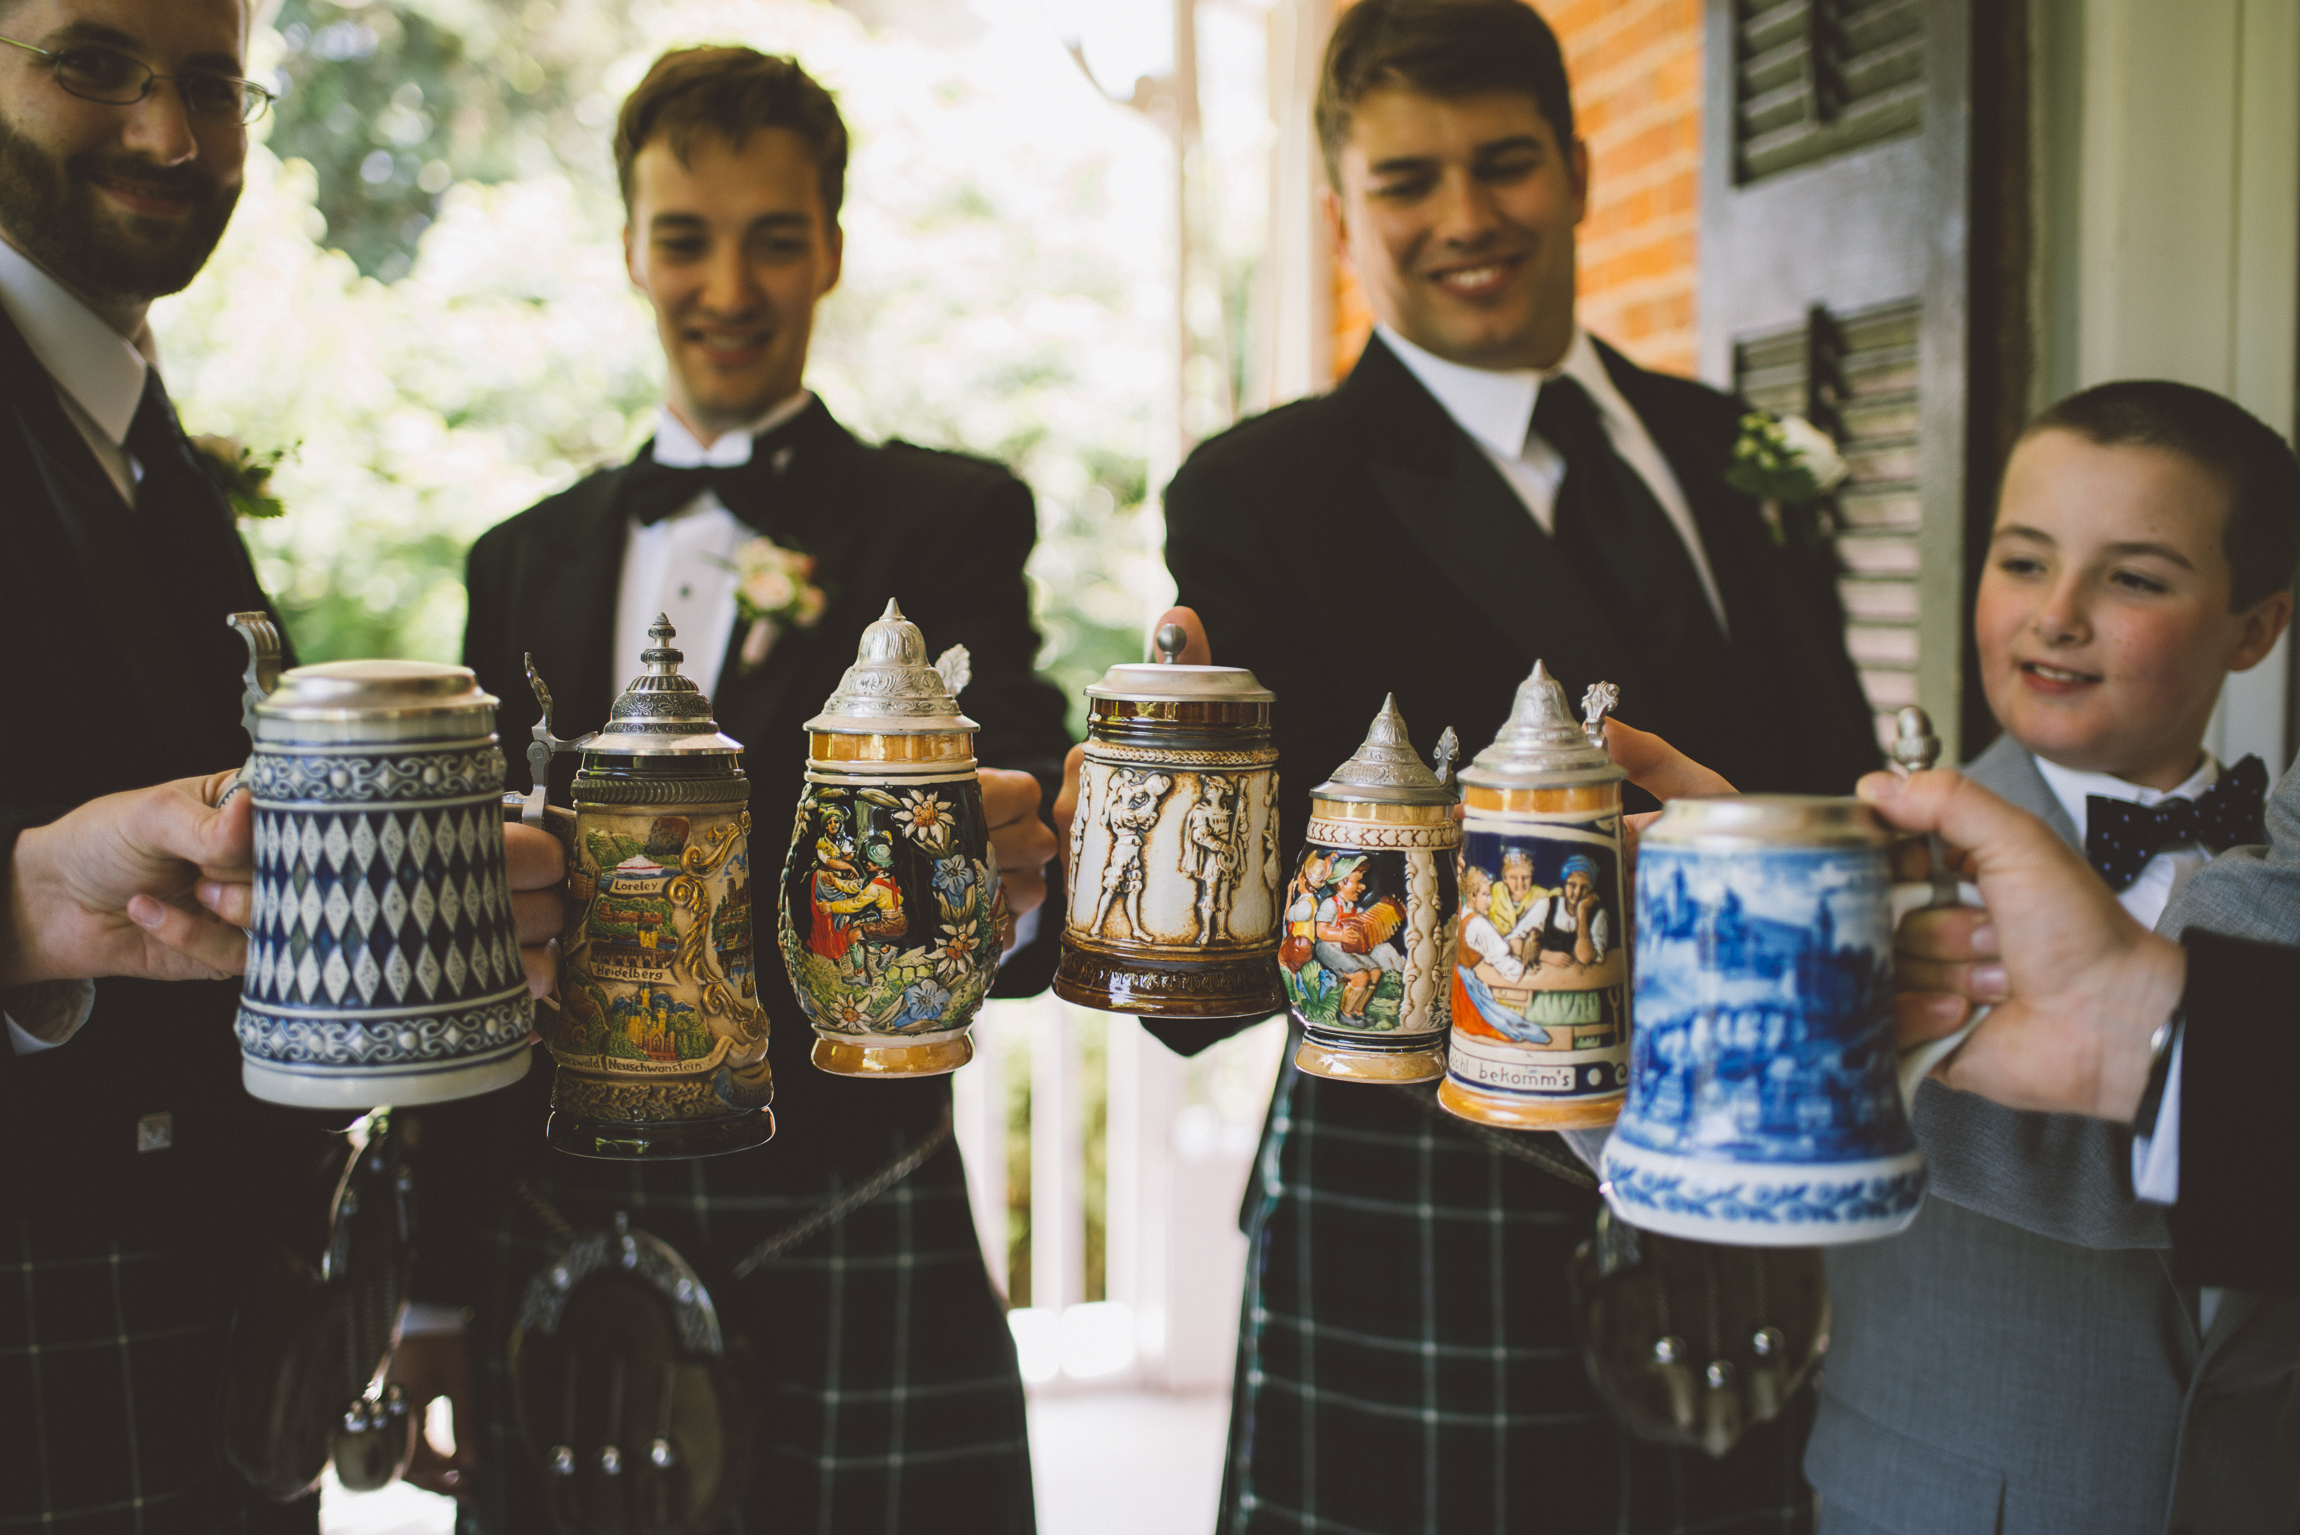 amanda cowley events niagara wedding planner kurtz orchard groomsmen beer steins cheers gift